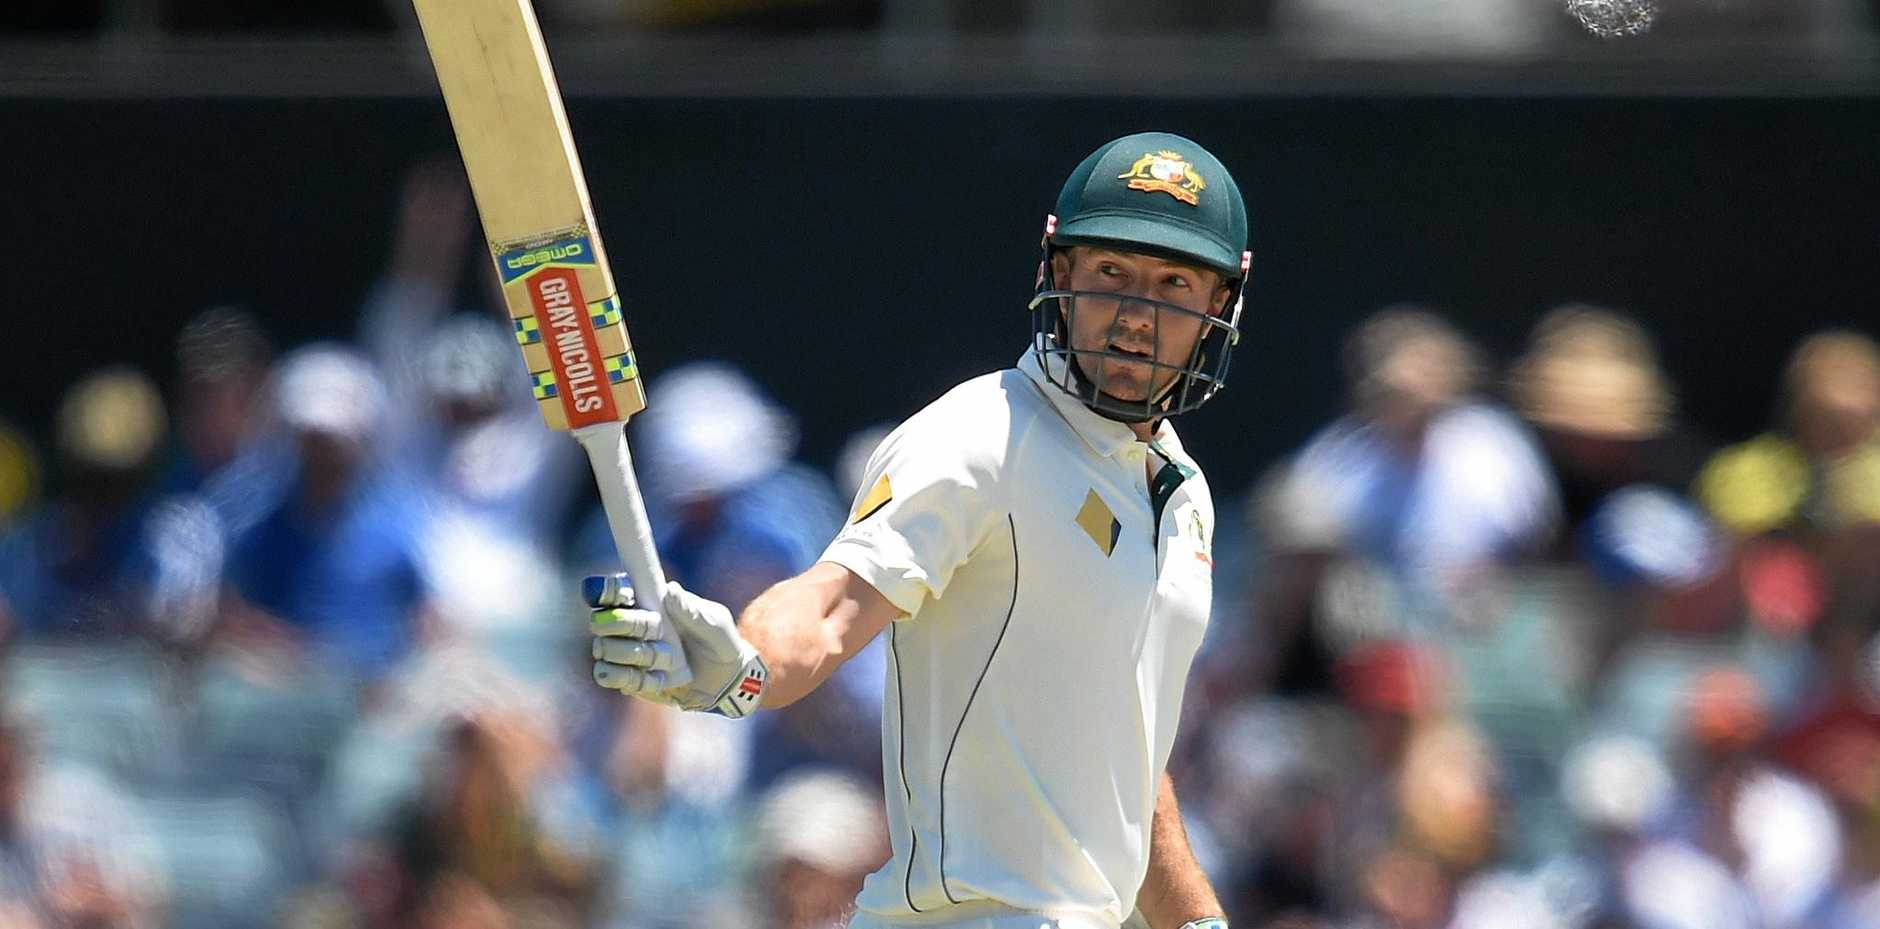 Australian batsman Shaun Marsh raises his bat after reaching a half century on day two of the first Test against South Africa at the WACA.